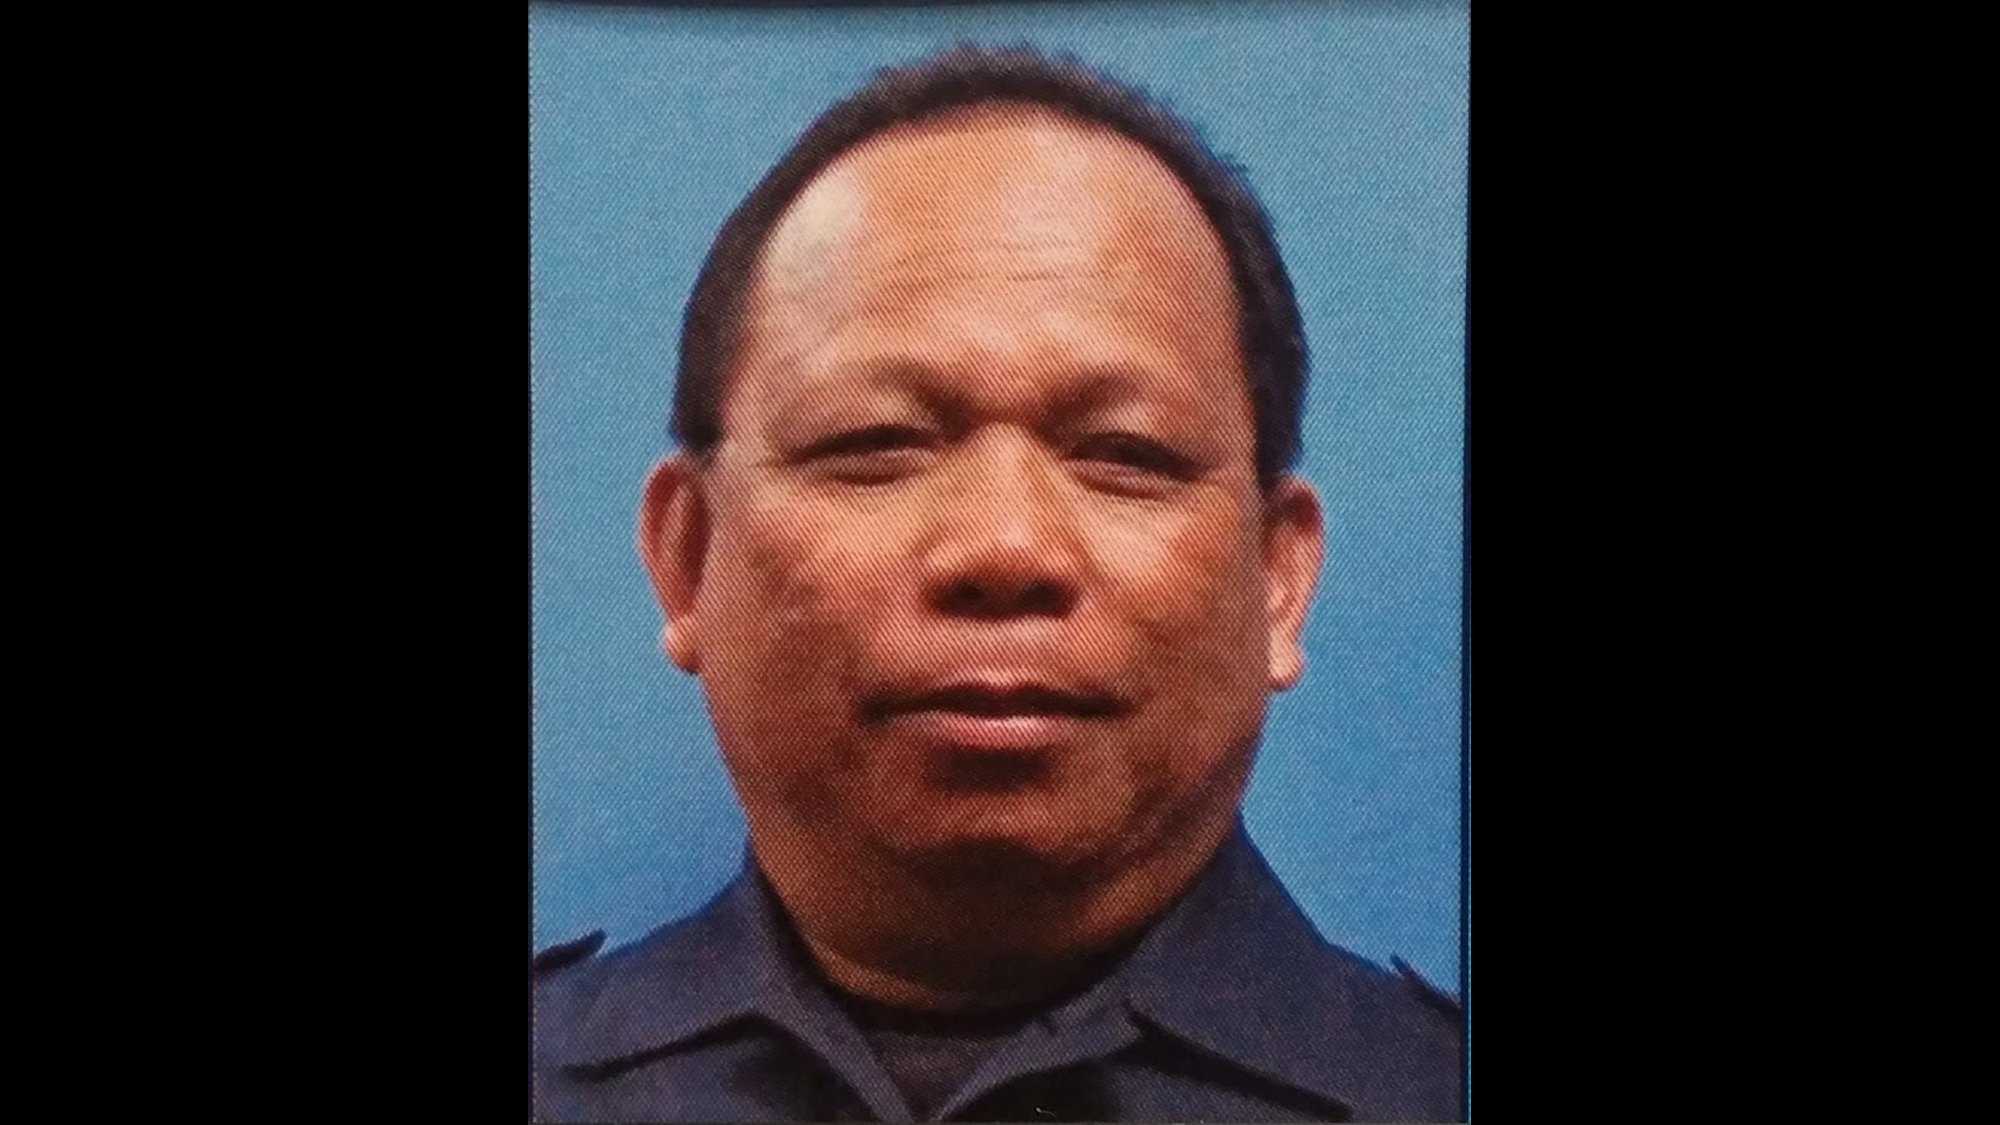 Prince George's County Police identified 62-year-old Eulalio Tordil as the suspect in the killing of his estranged wife outside a high school in Beltsville. Full credit: Prince George's County Police Department